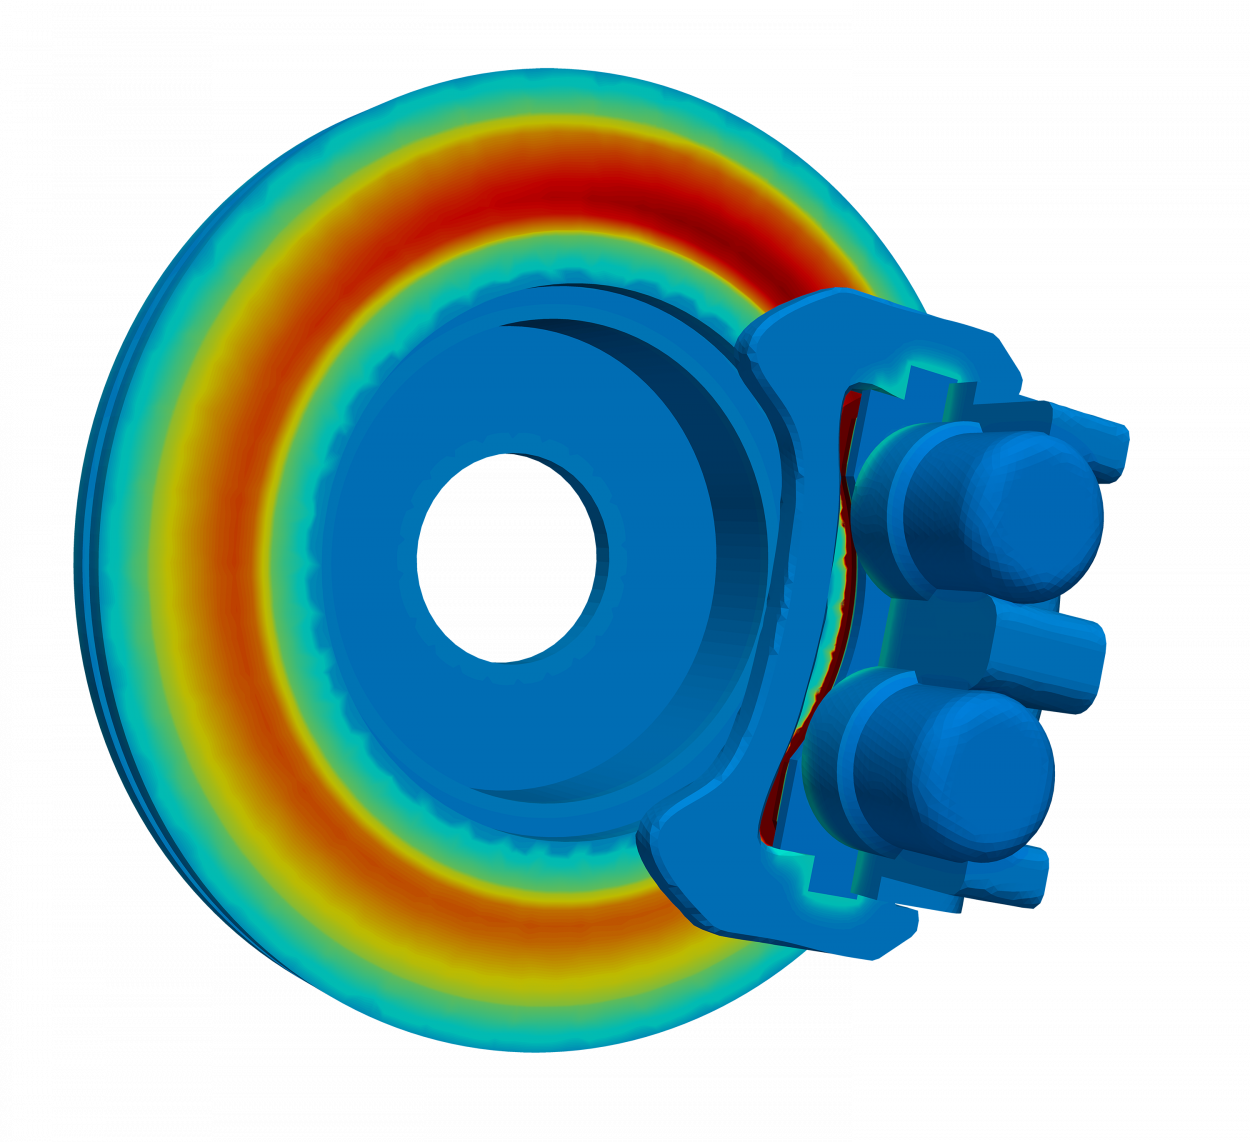 thermal simulation of brake disc and caliper showing heat generation from friction